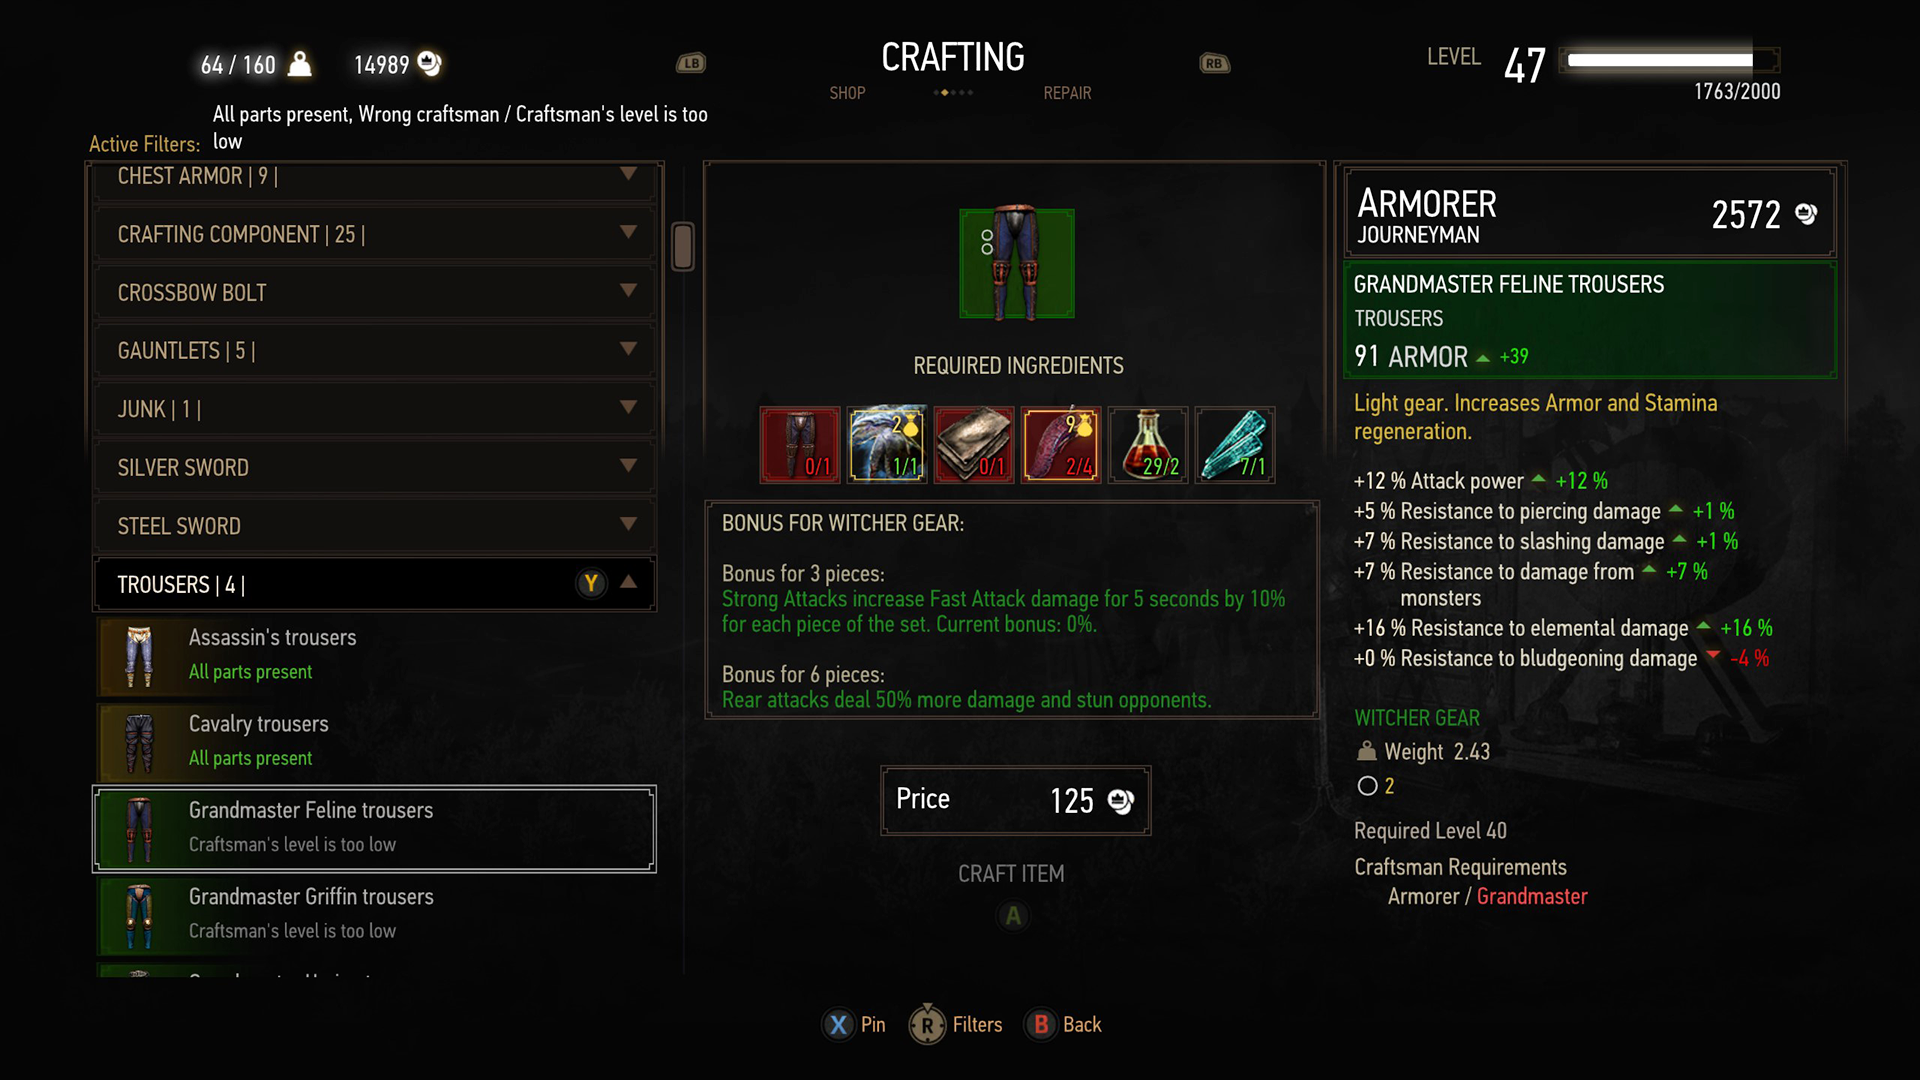 A Look At The Witcher 3 S Menu Overhaul Rpg Site